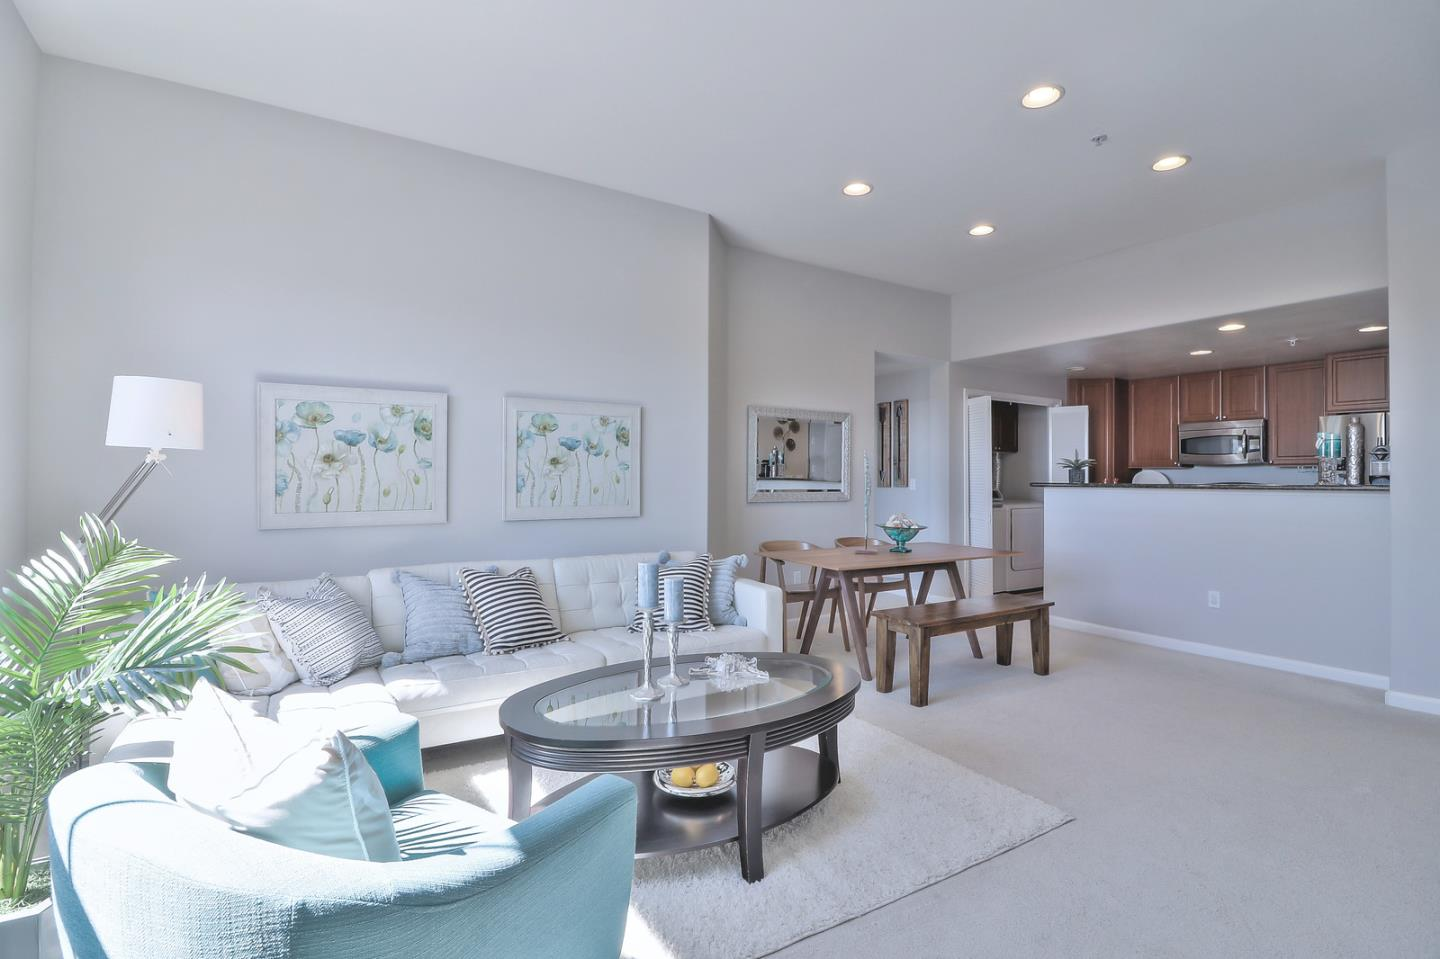 Additional photo for property listing at 1883 Agnew Road  Santa Clara, カリフォルニア 95054 アメリカ合衆国